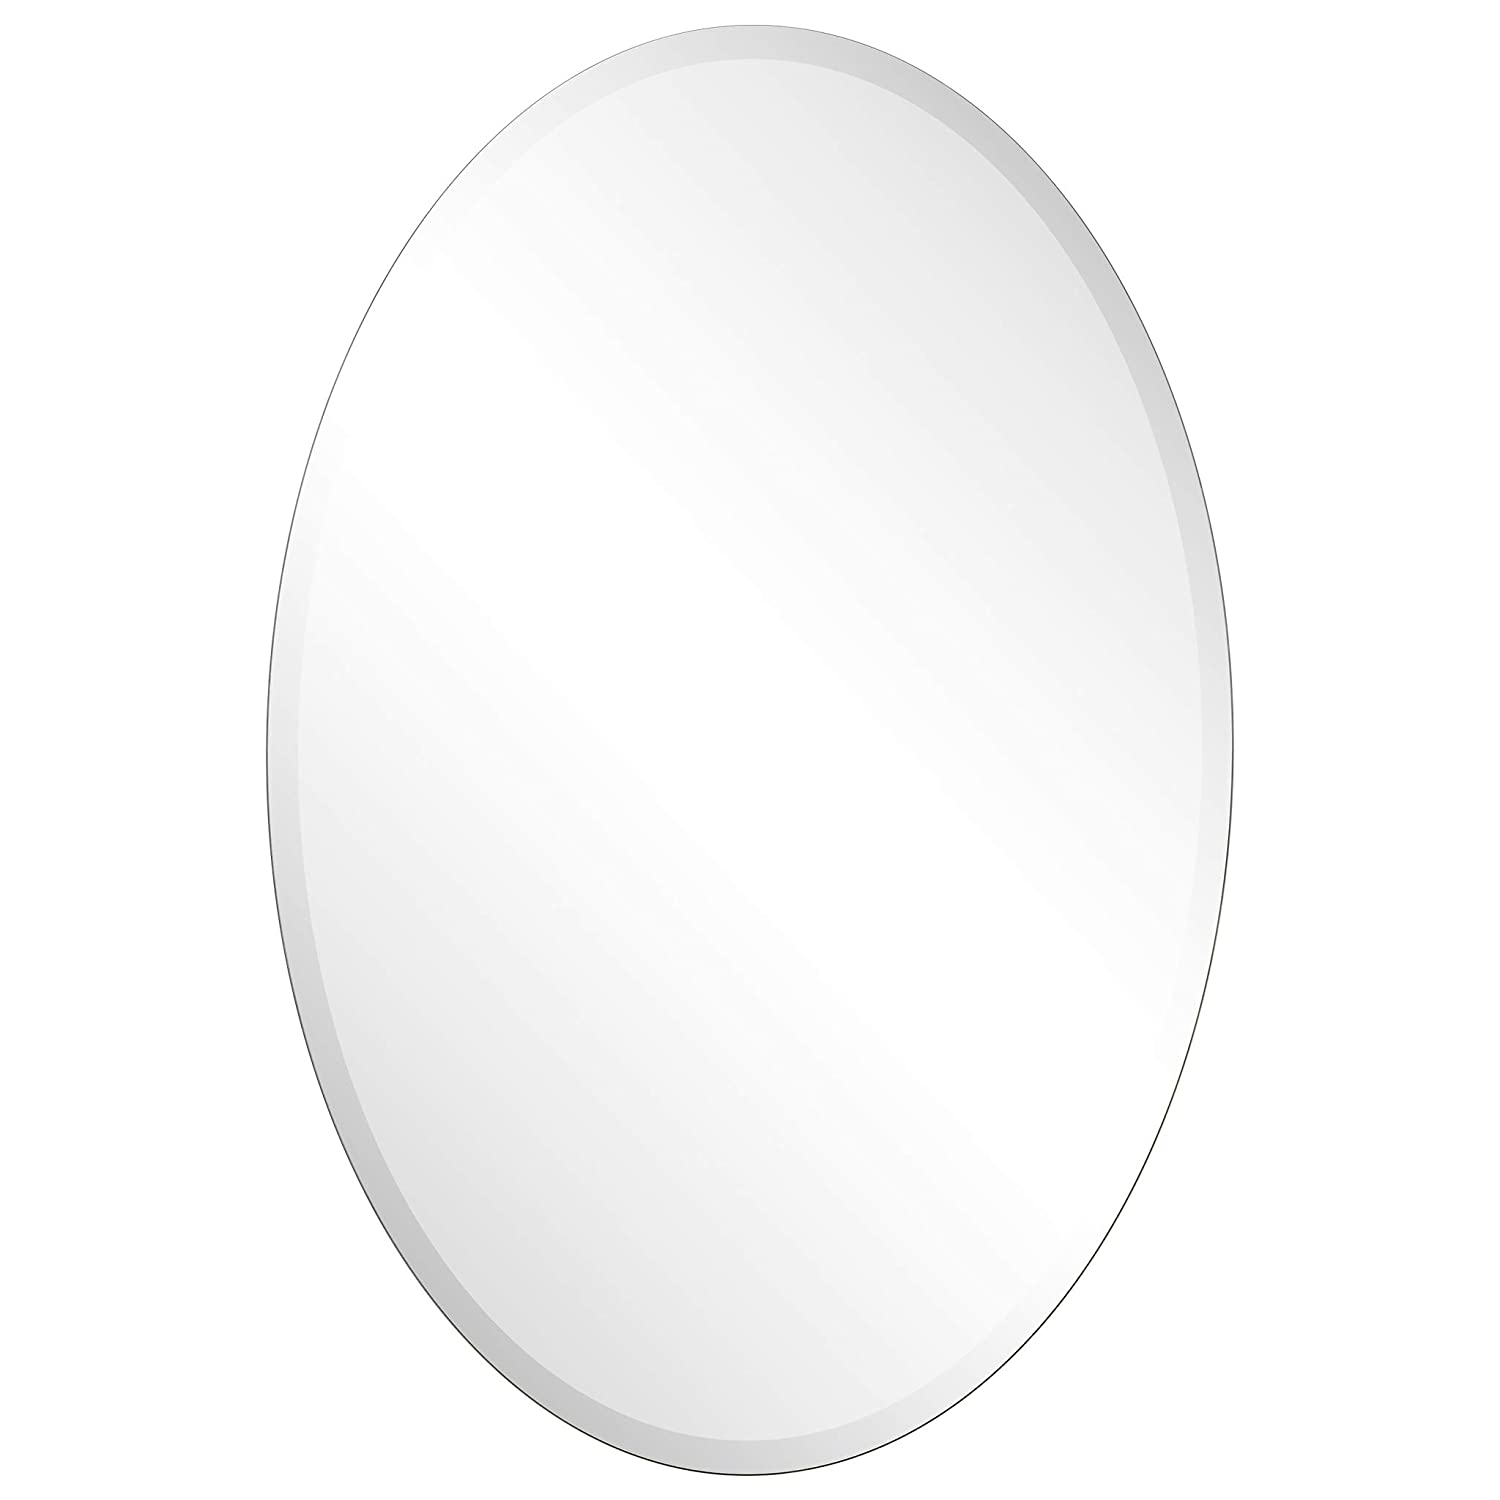 Empire Art Direct Wall-Mounted Modern Mirror 24 in. x 1.57 in. x 36 in. Clear,Champagne